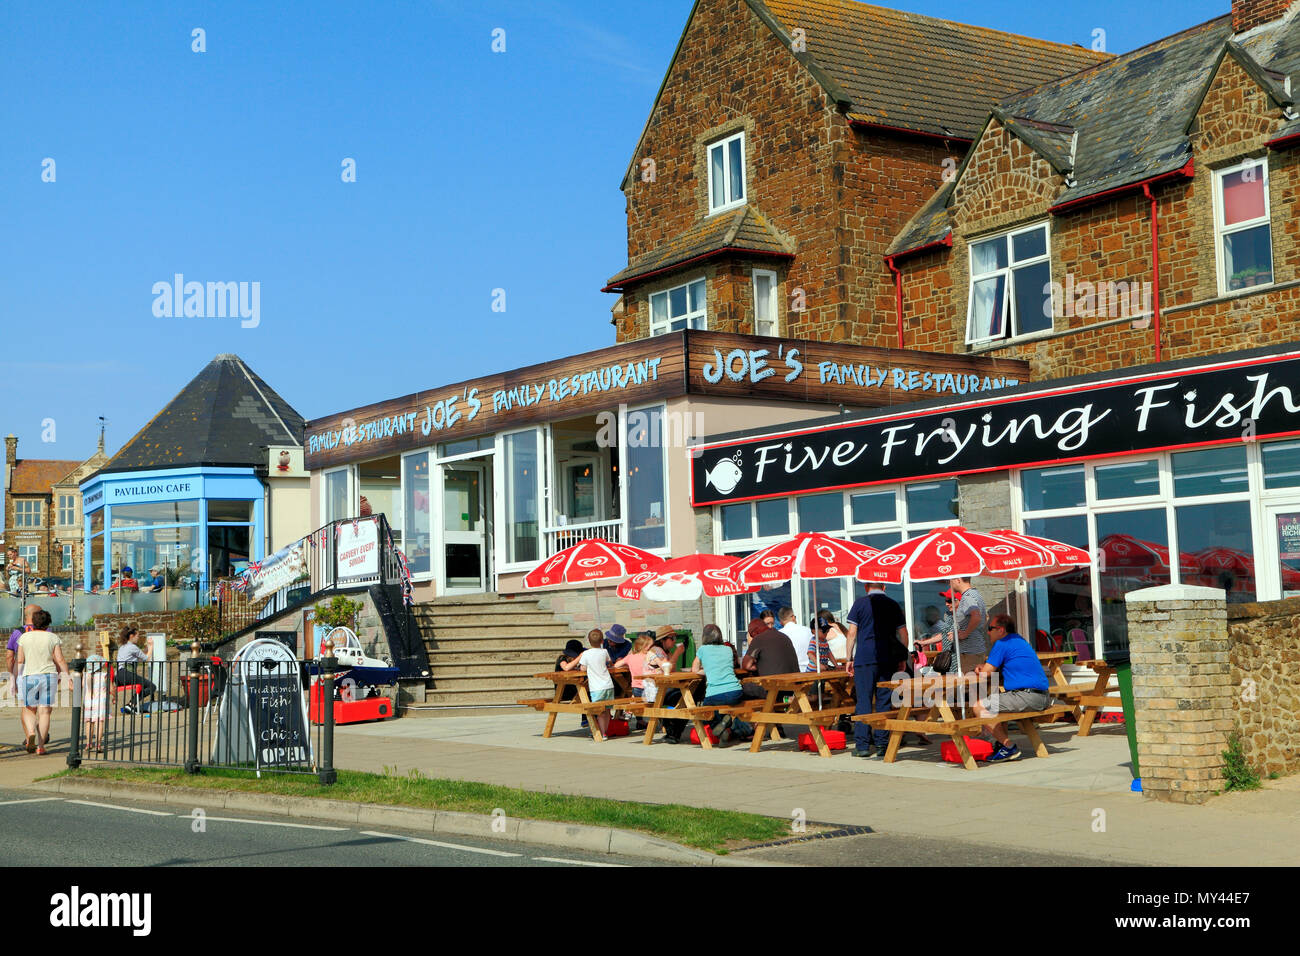 Hunstanton, fish shop, pavement, cafe, restaurants, holidaymakers, seaside resort, town, visitors, Norfolk, UK. - Stock Image